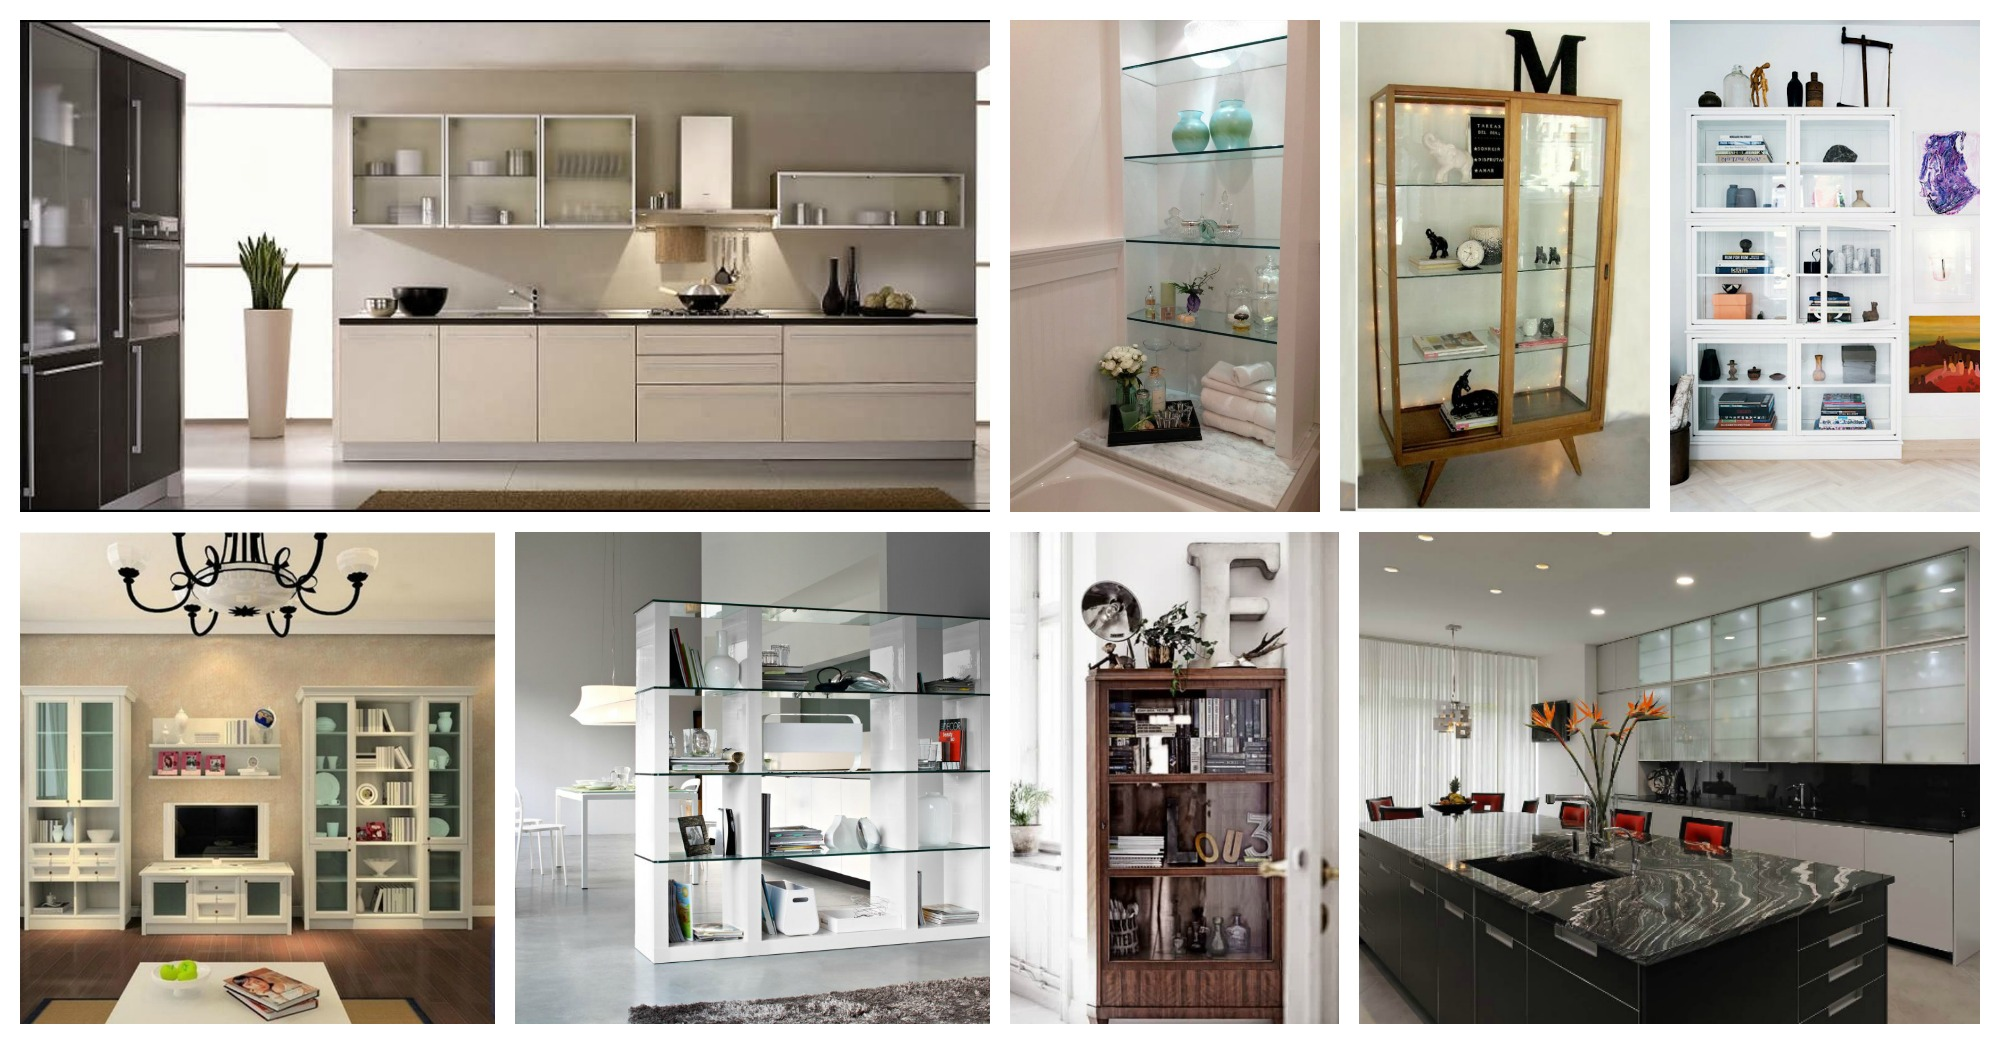 Kitchen glass cabinets pictures - How To Decorate Your Glass Cabinets In Extraordinary Ways